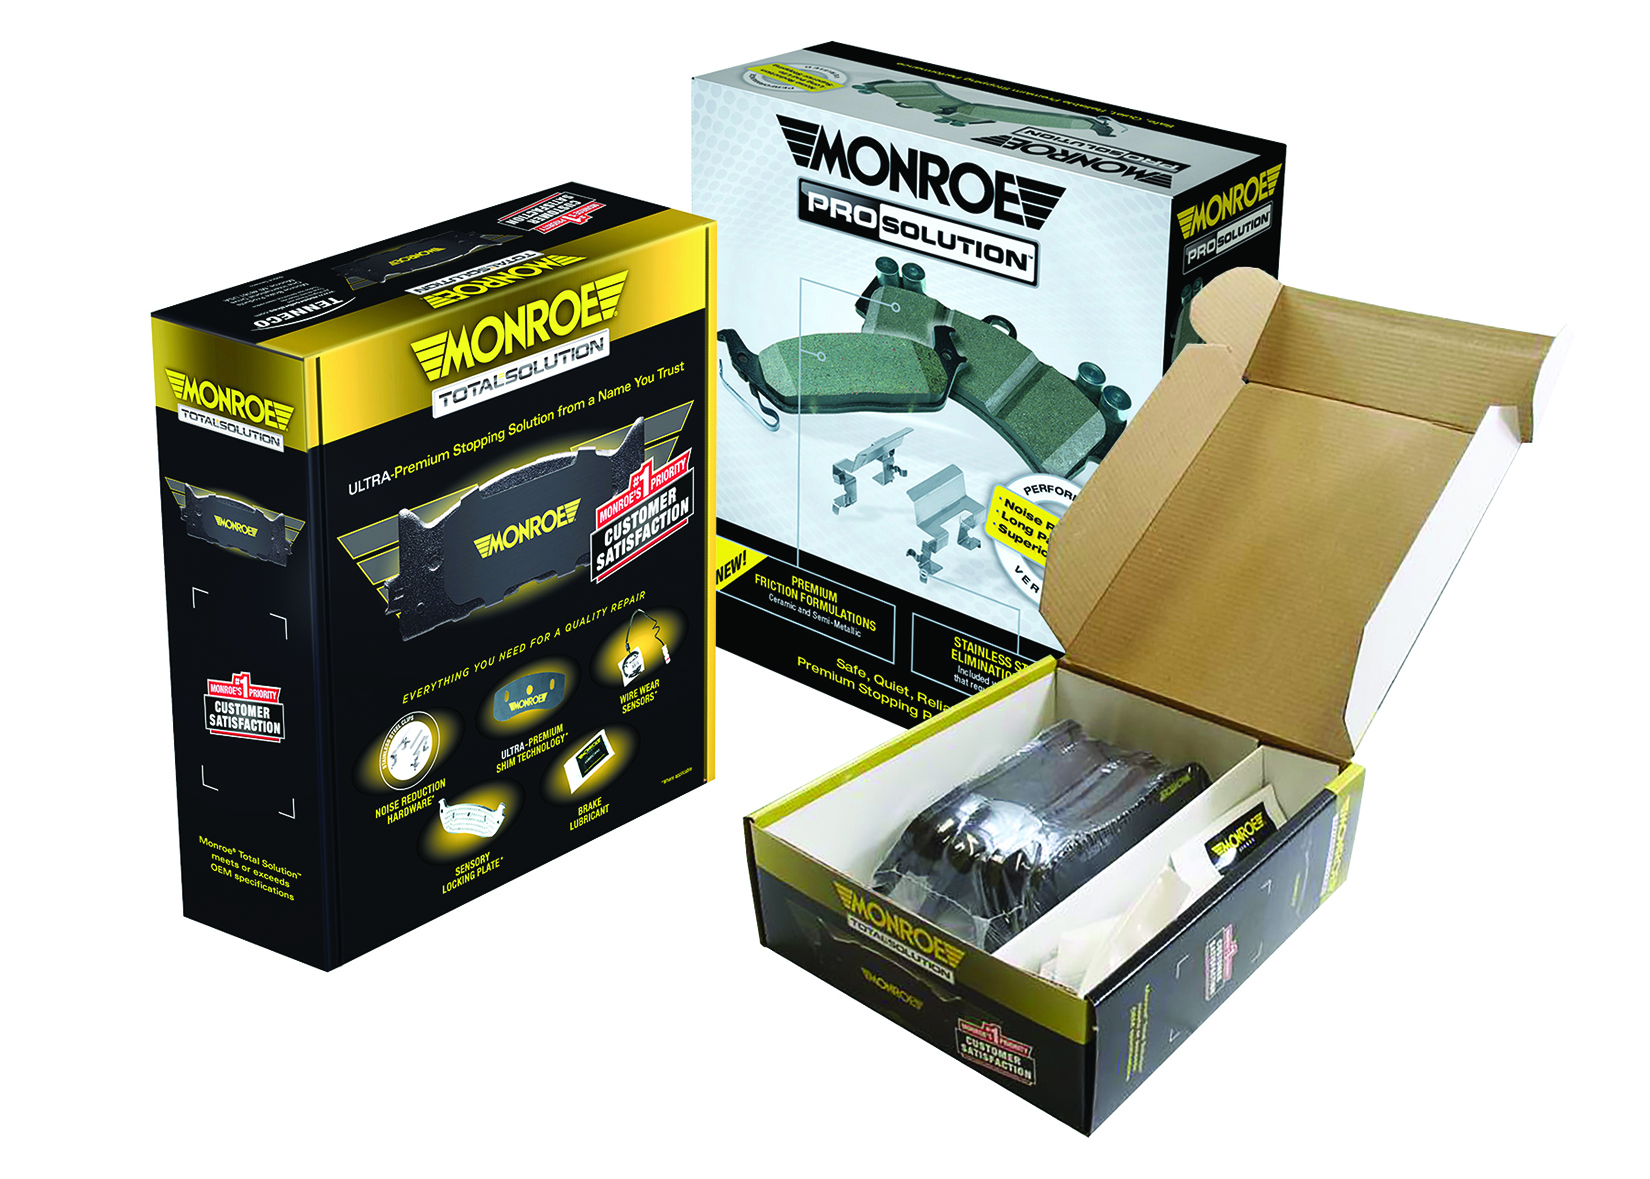 Monroe Brakes Expands Coverage to 88.3 Million vehicles in 2016